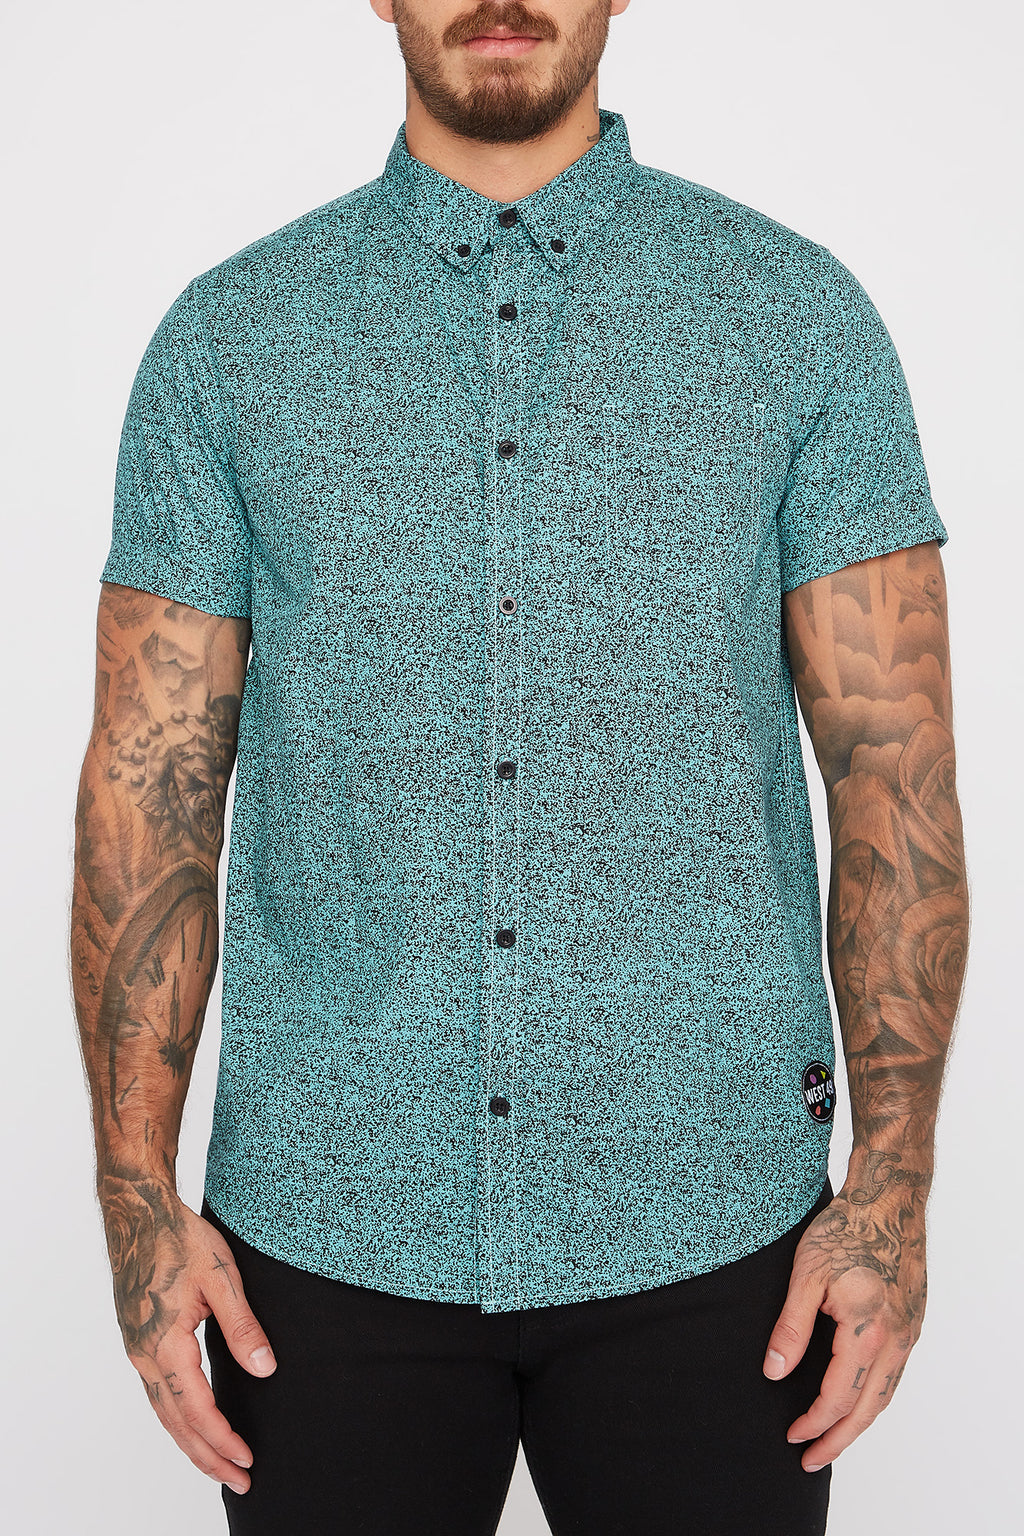 West49 Mens Cotton Speckle Print Button Up Shirt